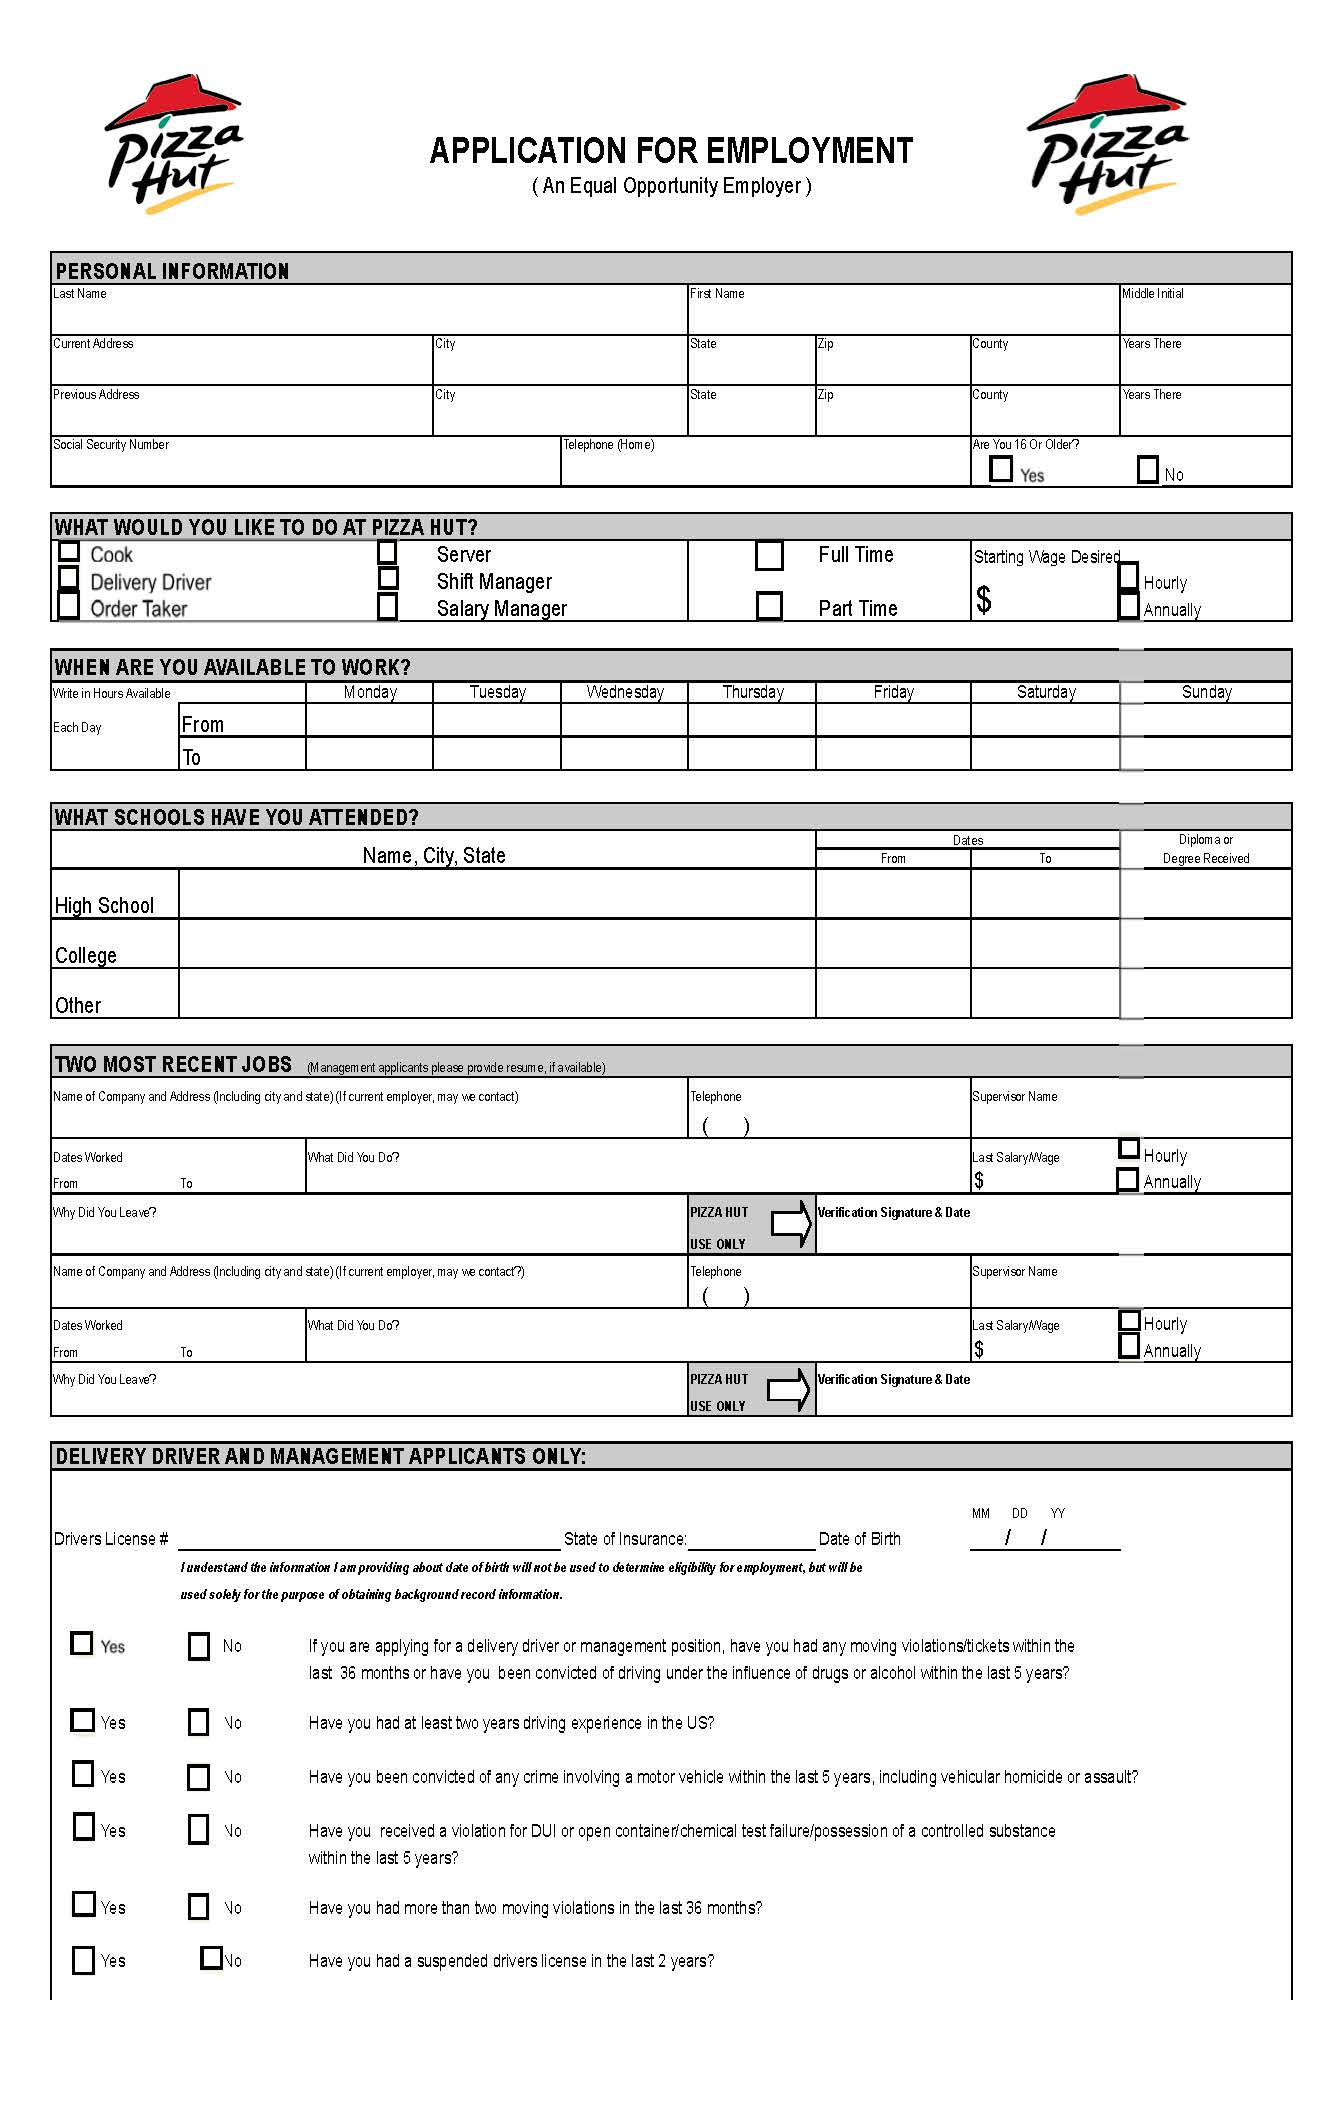 Job Applications Printable Pizza Hut | Job Application